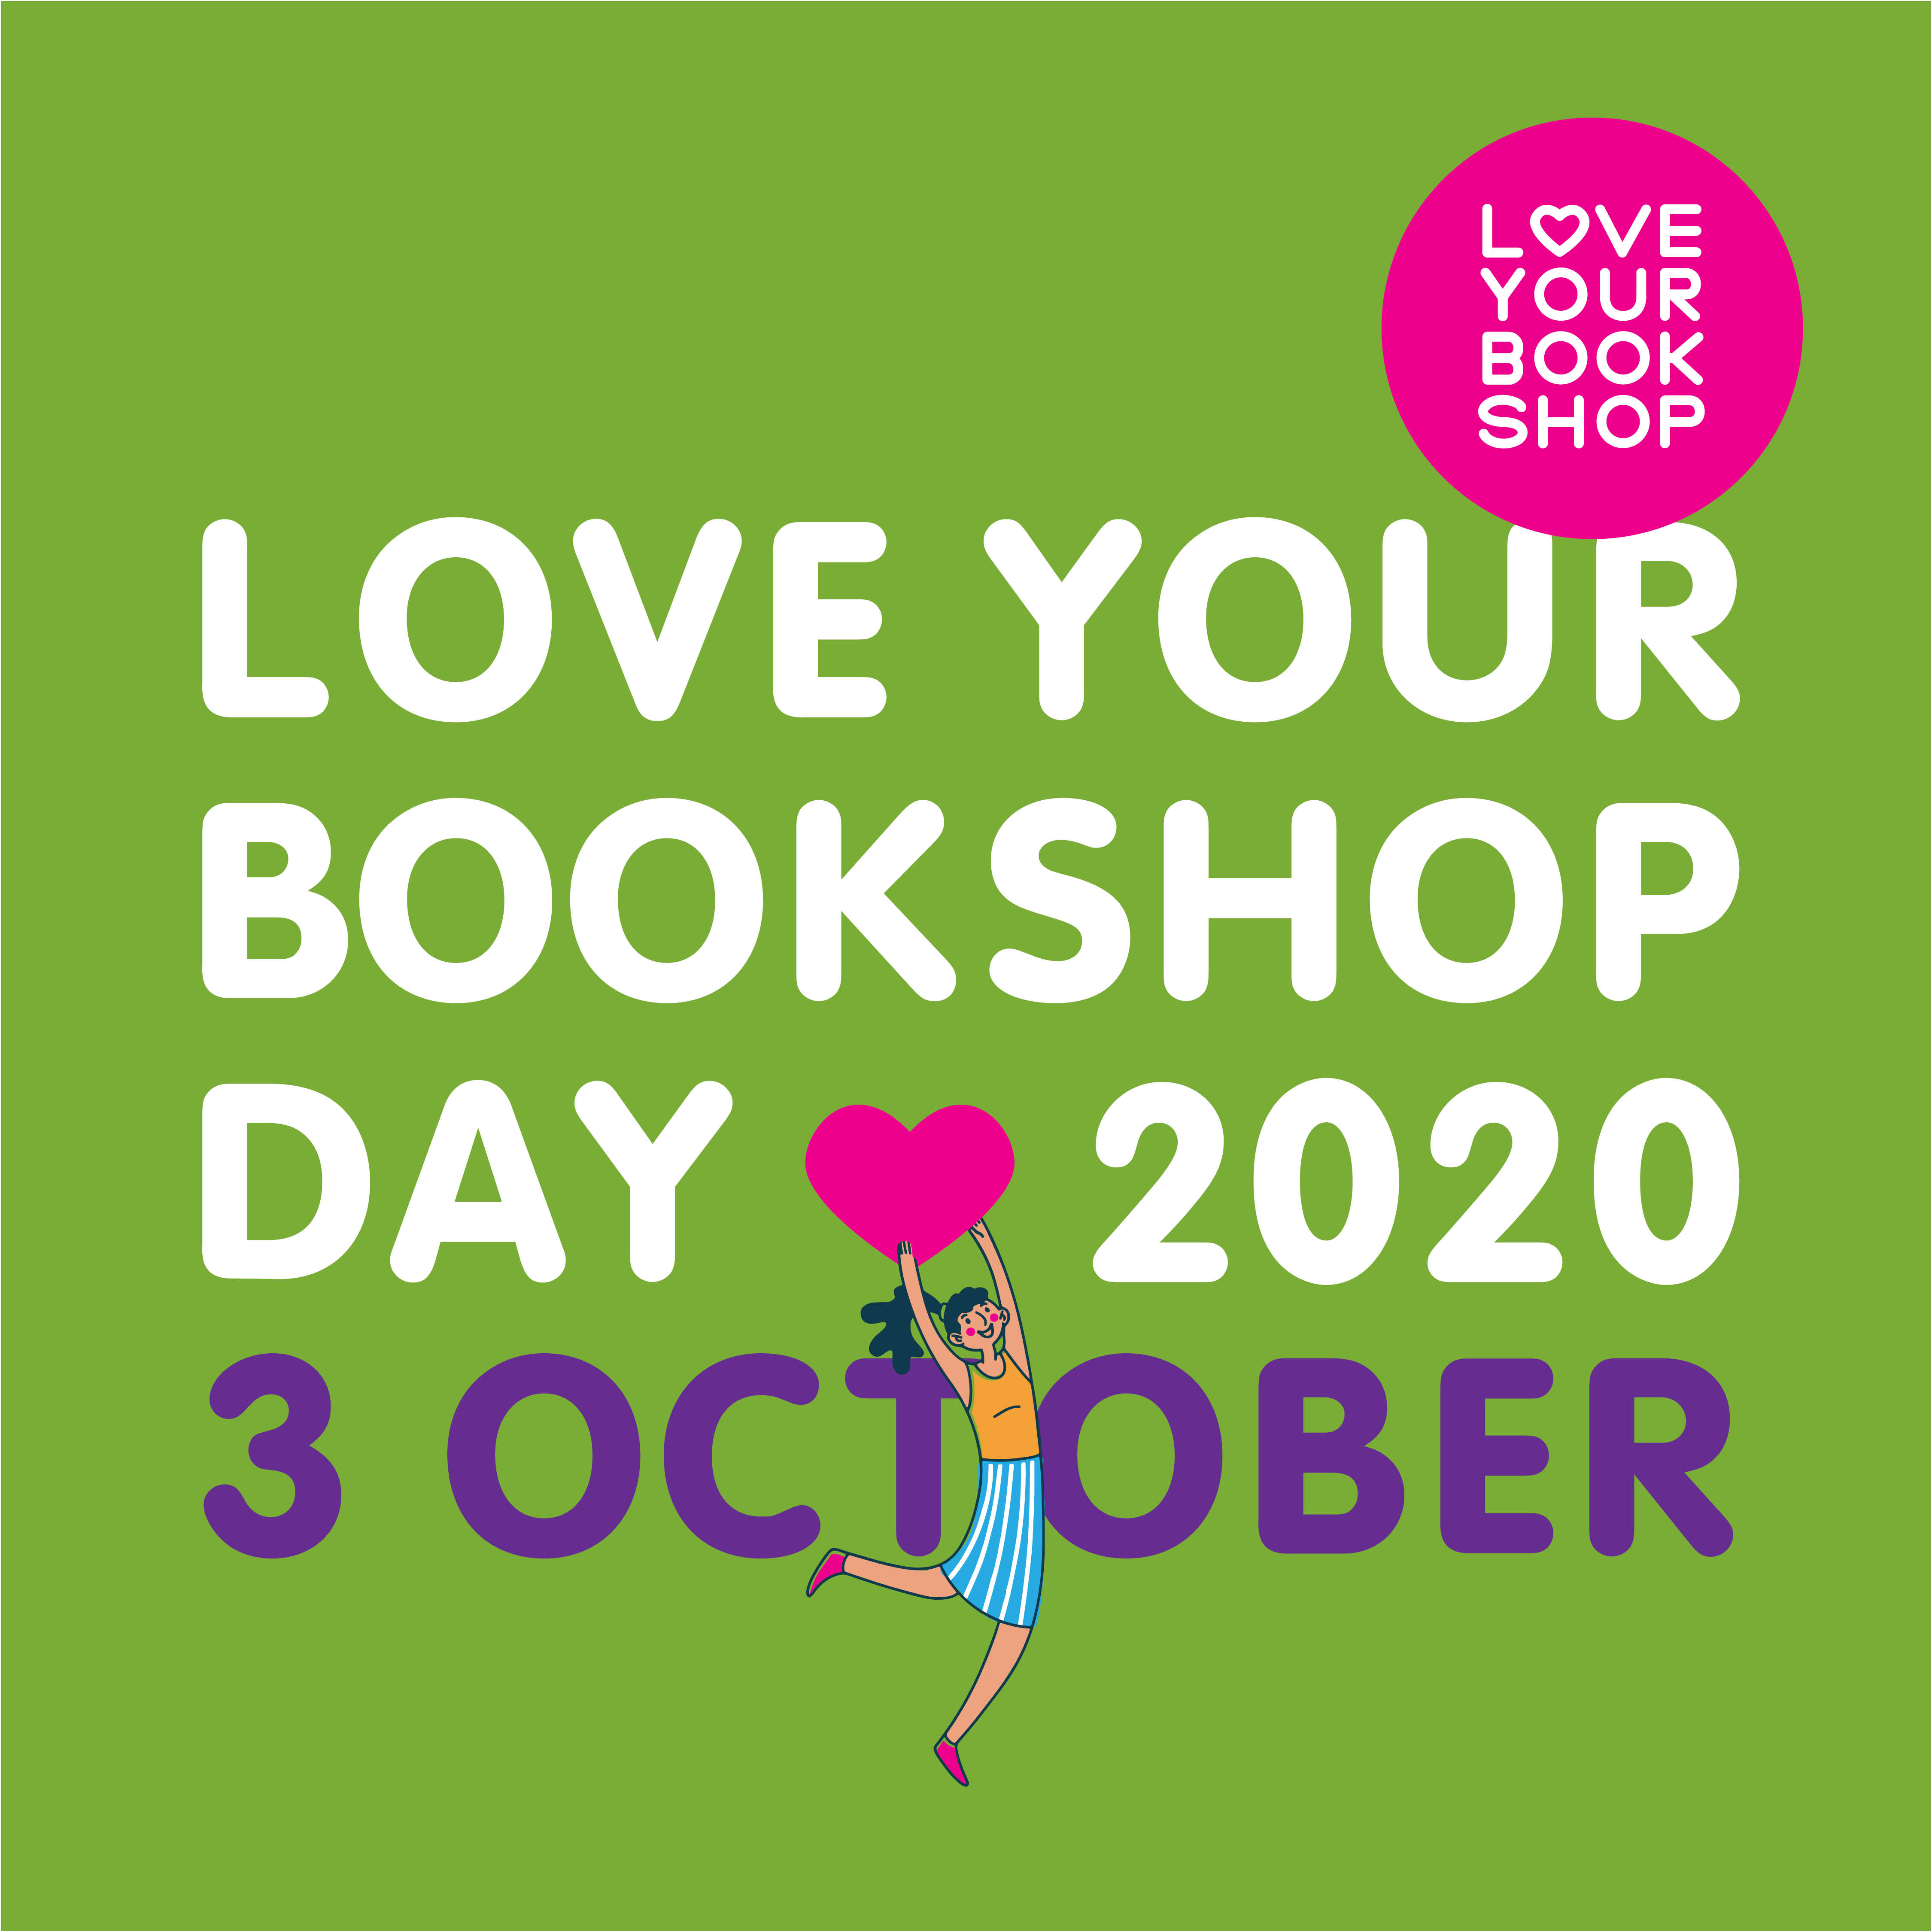 Love Your Bookshop Day by Anna Blackie event image